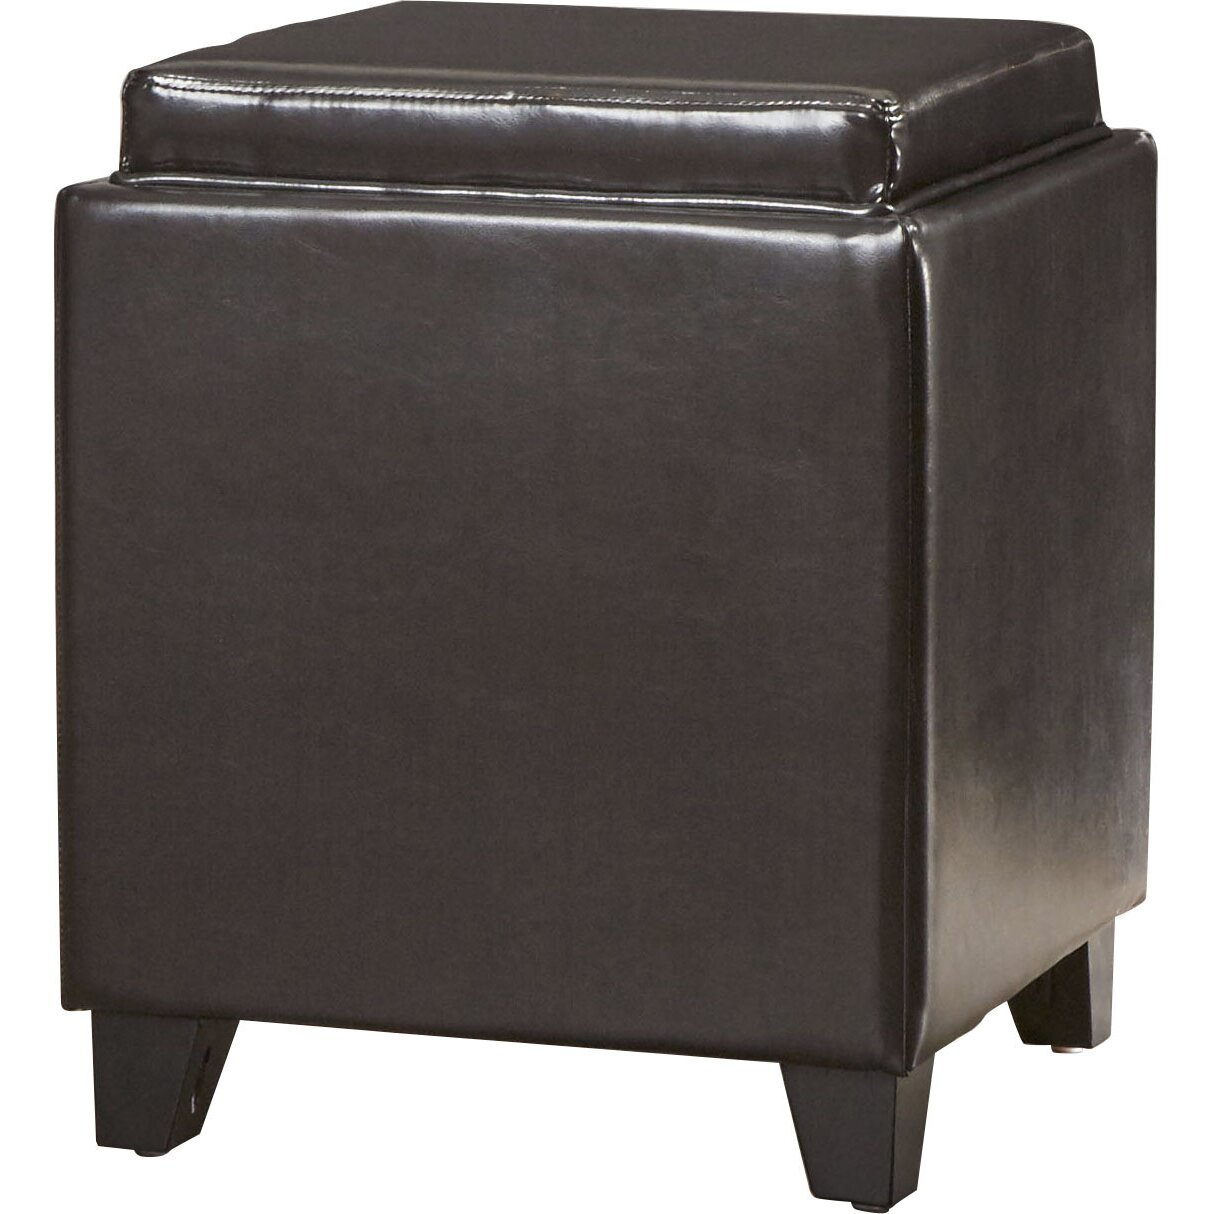 carroll storage ottoman with tray reviews allmodern. Black Bedroom Furniture Sets. Home Design Ideas